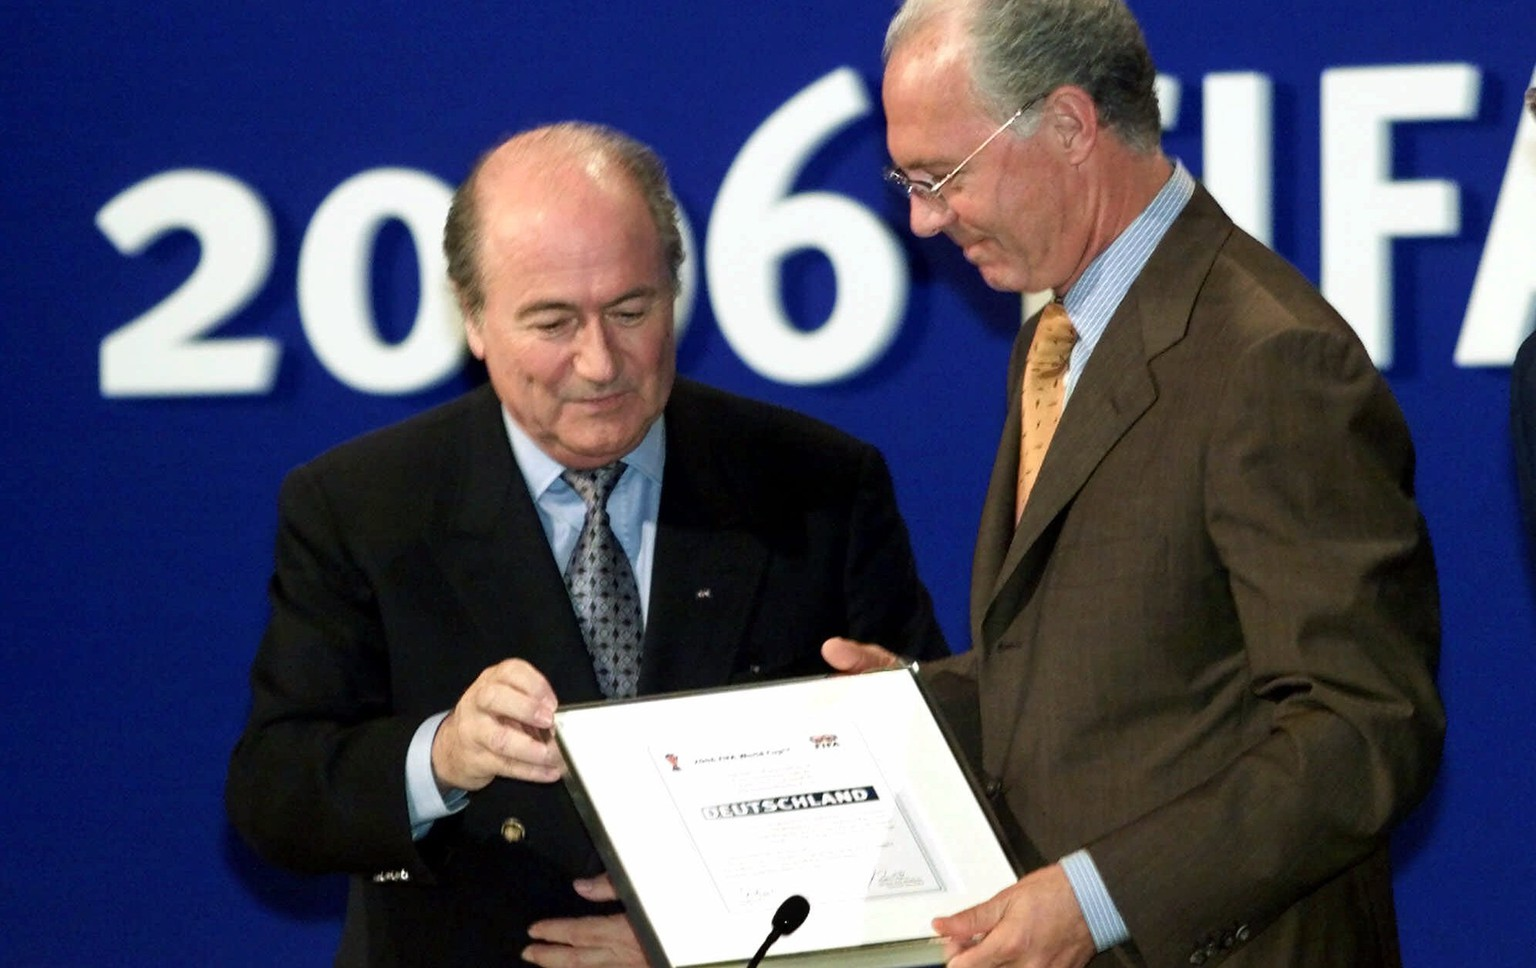 FILE - In this July 6, 2000 file picture FIFA president Joseph Blatter, left, hands over the World Cup documents to Franz Beckenbauer of the German delegation in Zurich, Switzerland,  after soccer's world governing body FIFA announced Germany will host the soccer World Cup 2006.  A highly anticipated independent report to be released Friday March 4, 2016 could throw light into corruption allegations against Germany's 2006 World Cup organizers and the fate of a dubious payment to FIFA.  (AP Photo/Diether Endlicher,file)